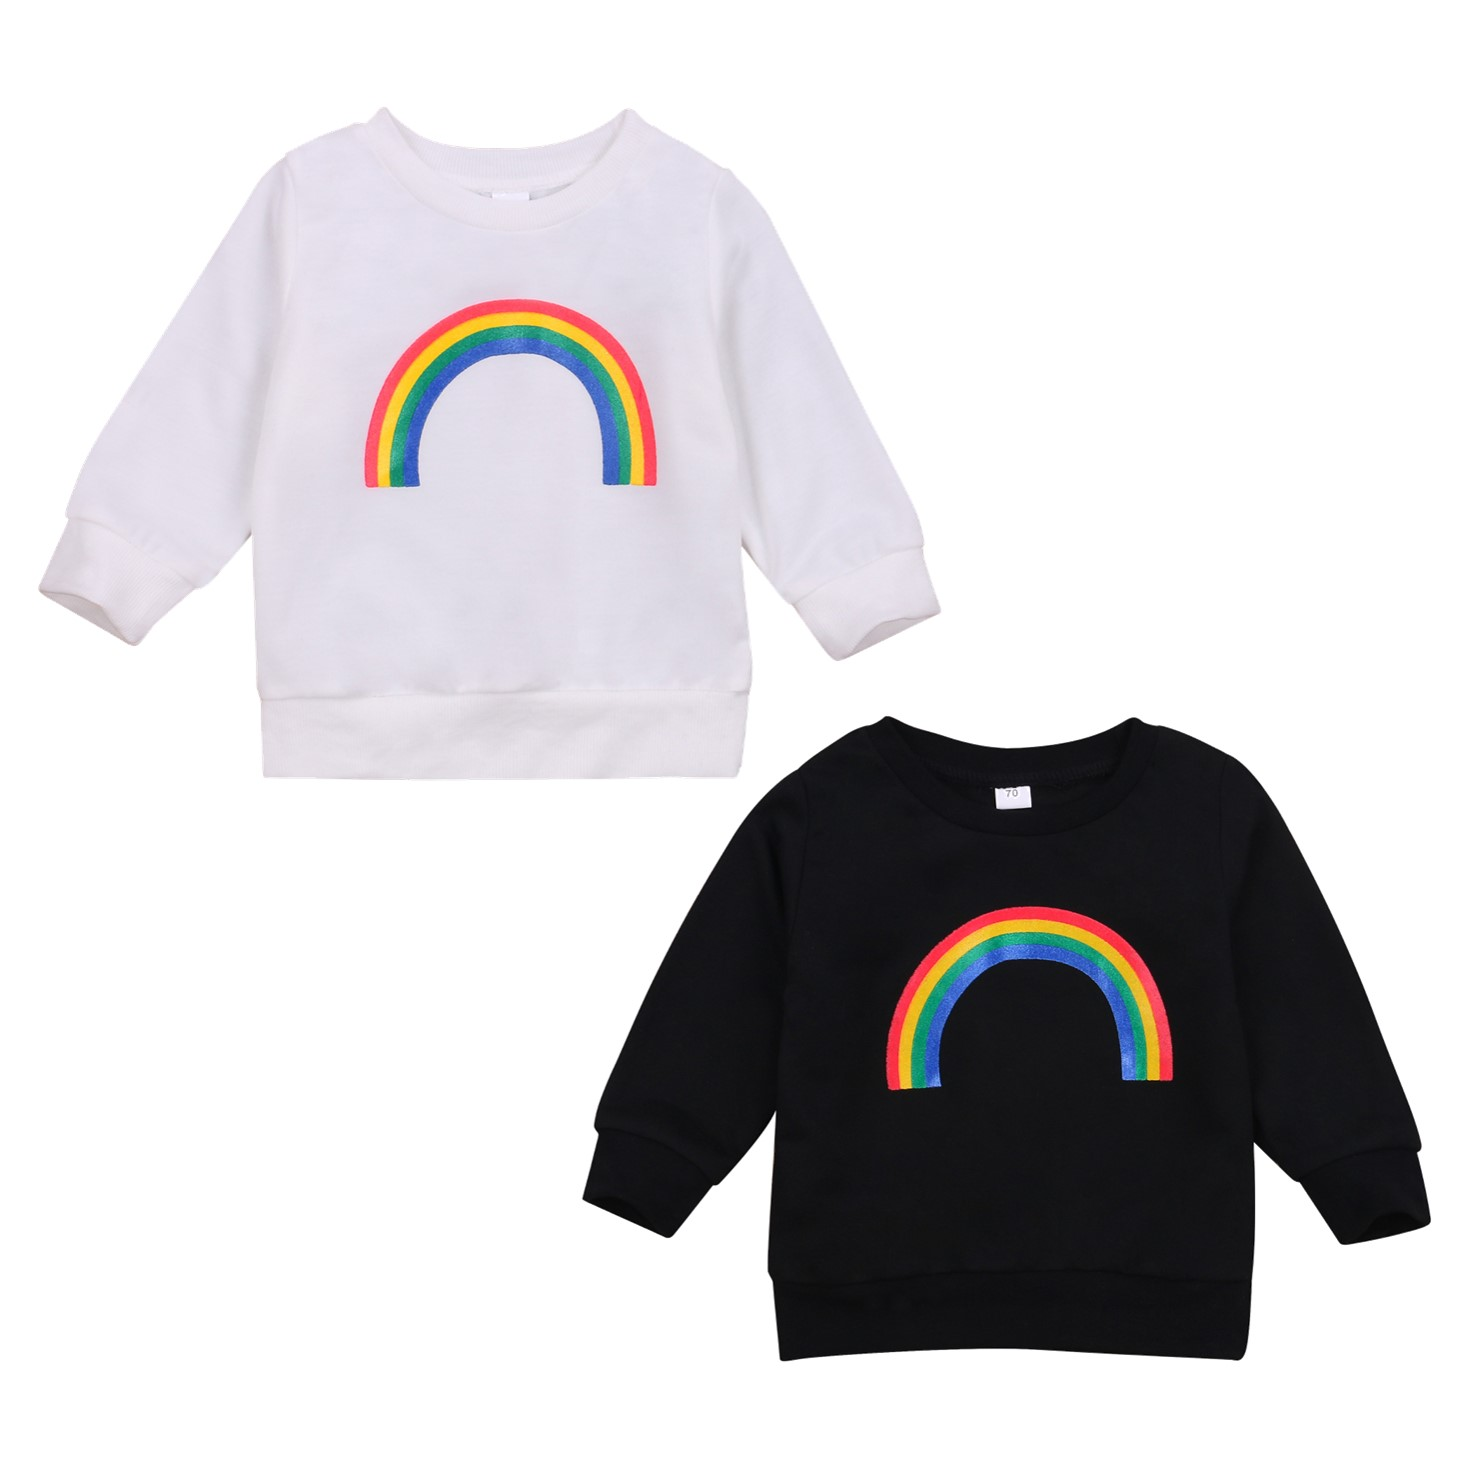 Pudcoco 2020 Autumn 0-3Y Toddler Baby Girl Boy Rainbow Pattern Print Long Sleeve Sweatshirt Infant Outfit Clothes White/Black 1